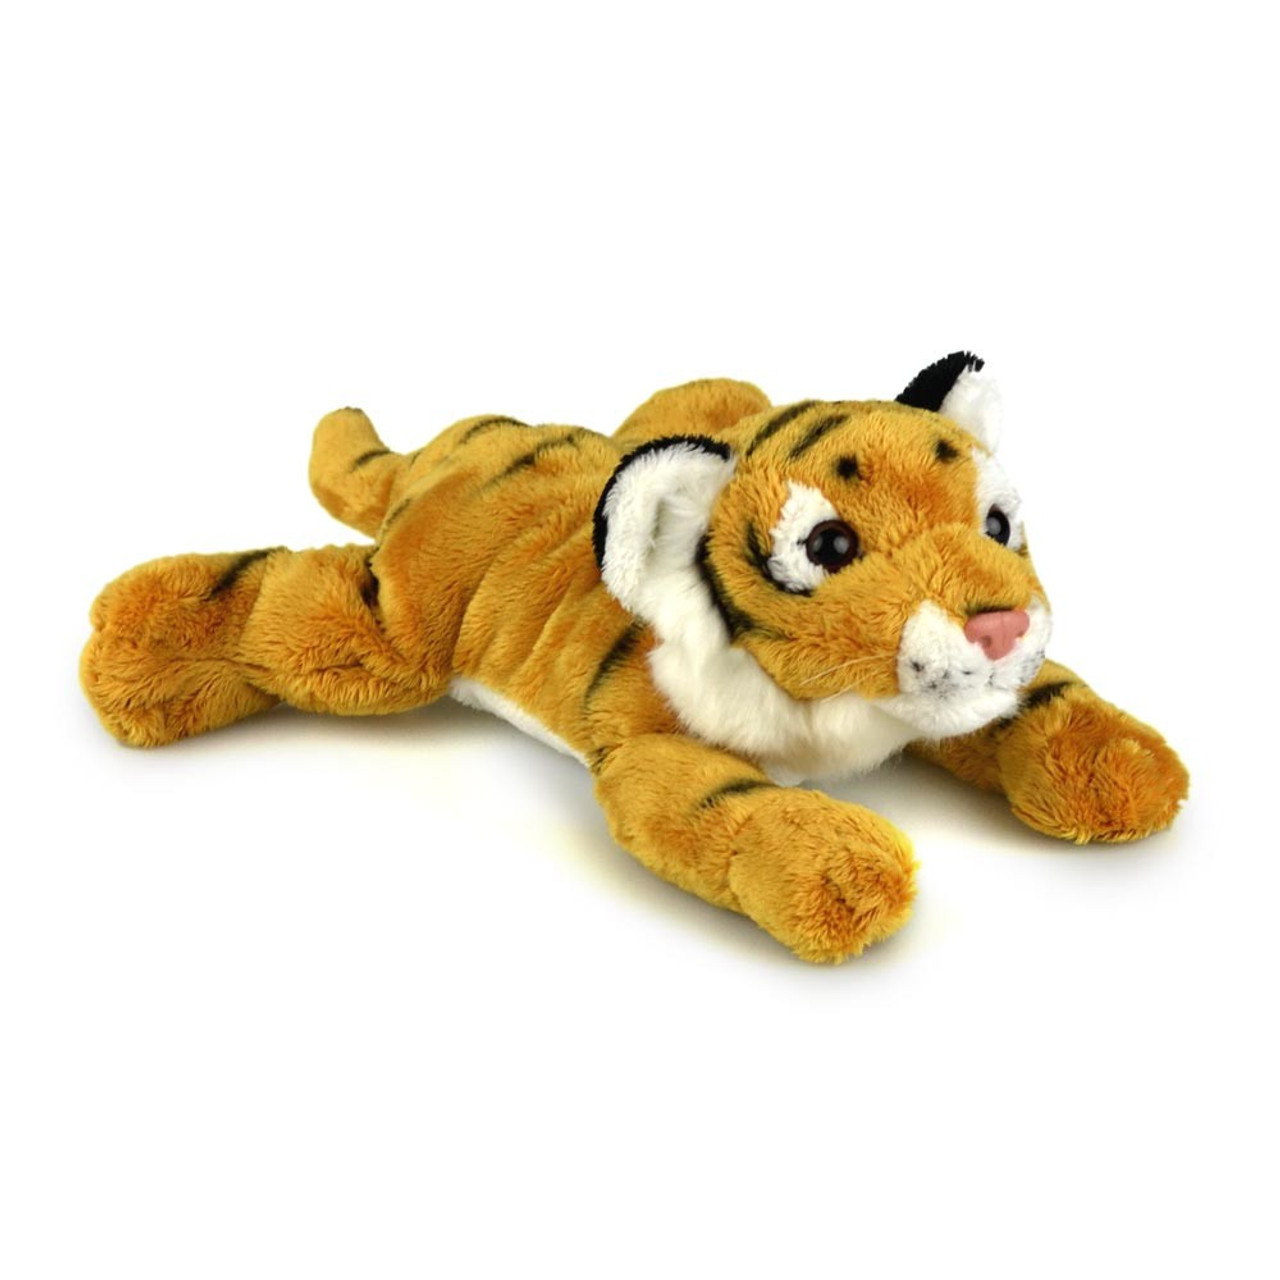 Korimco Tiger Conga Cubs Plush Toy 30cm - GOLD